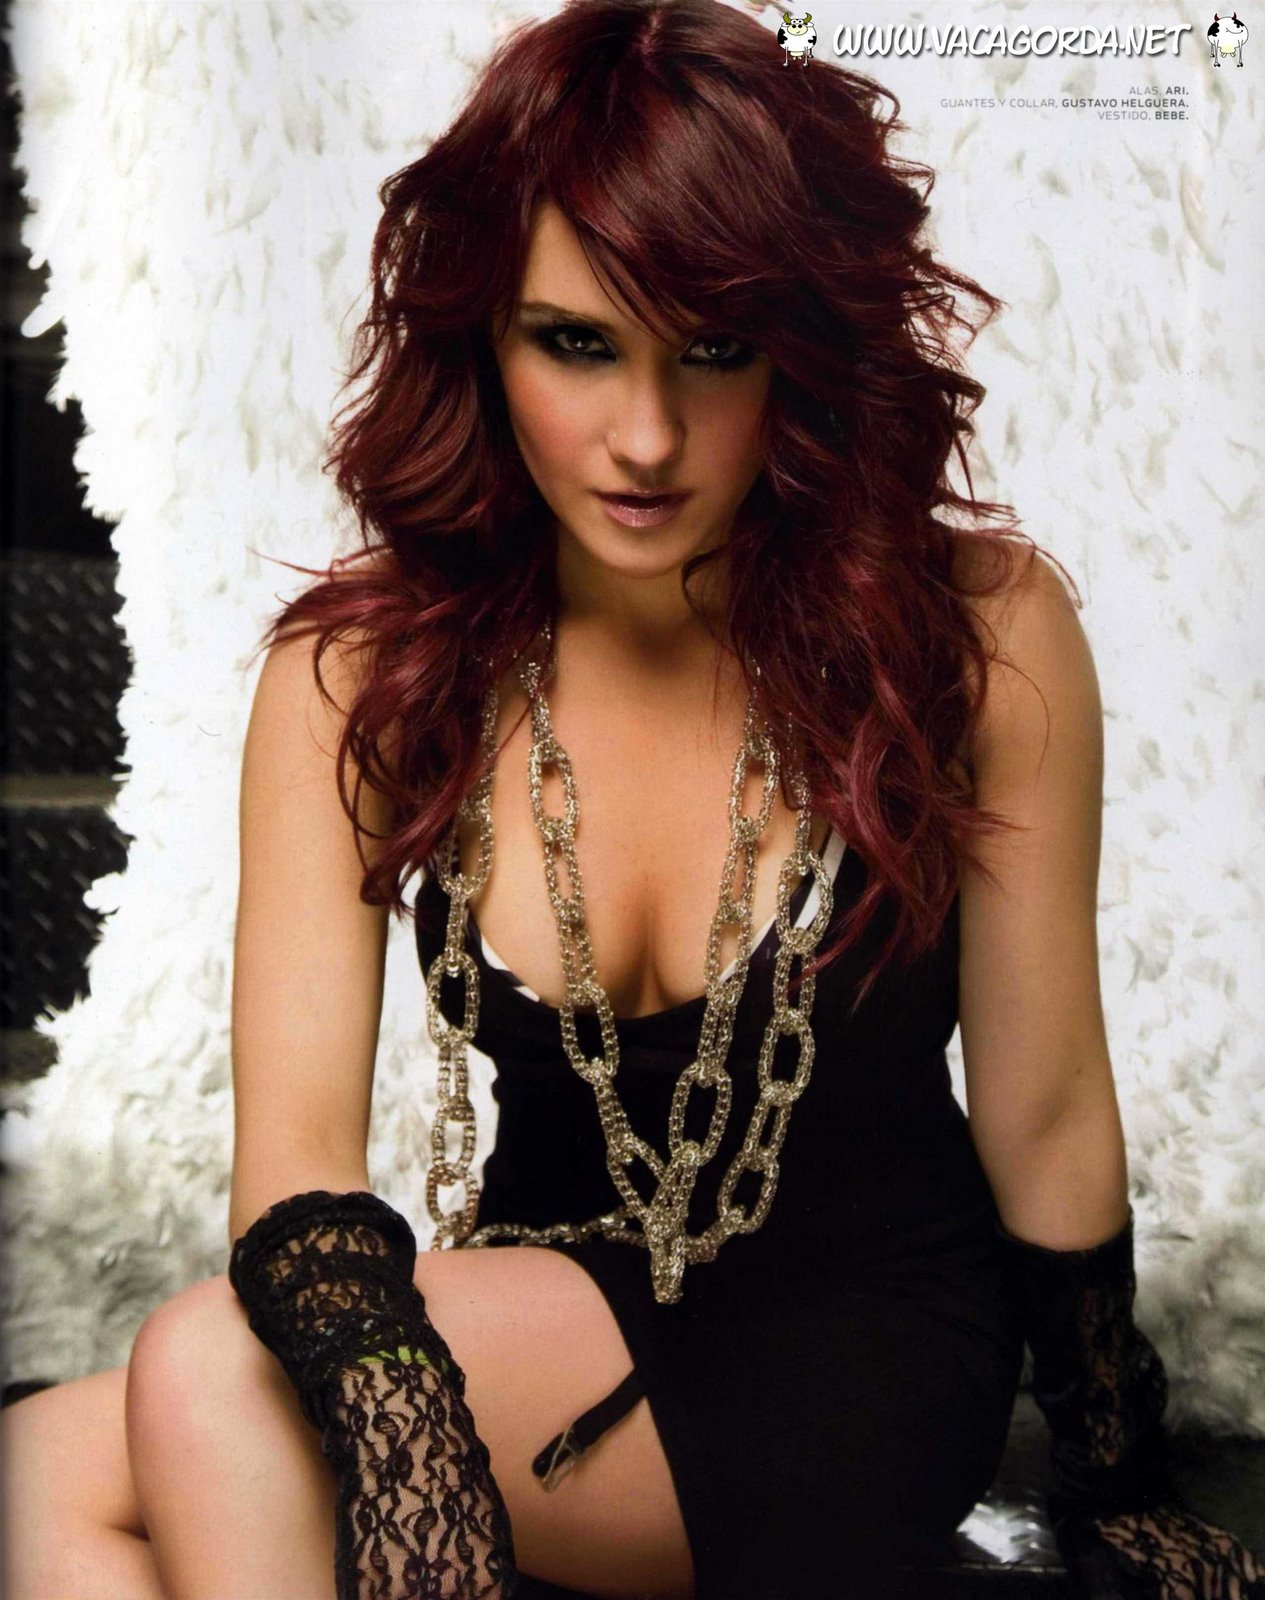 wallpapers de dulce maria: